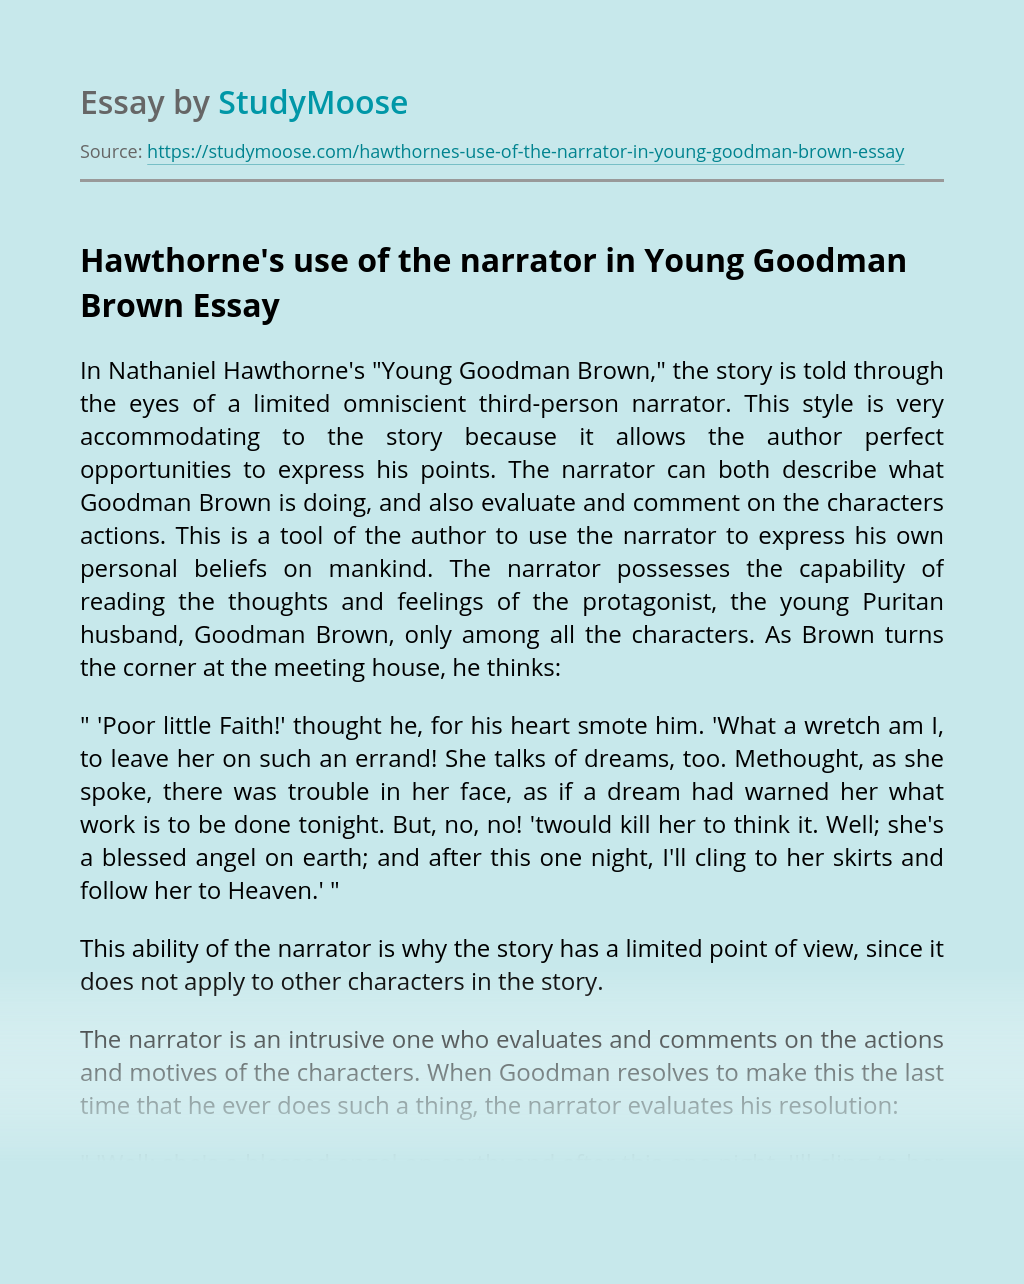 Hawthorne's use of the narrator in Young Goodman Brown